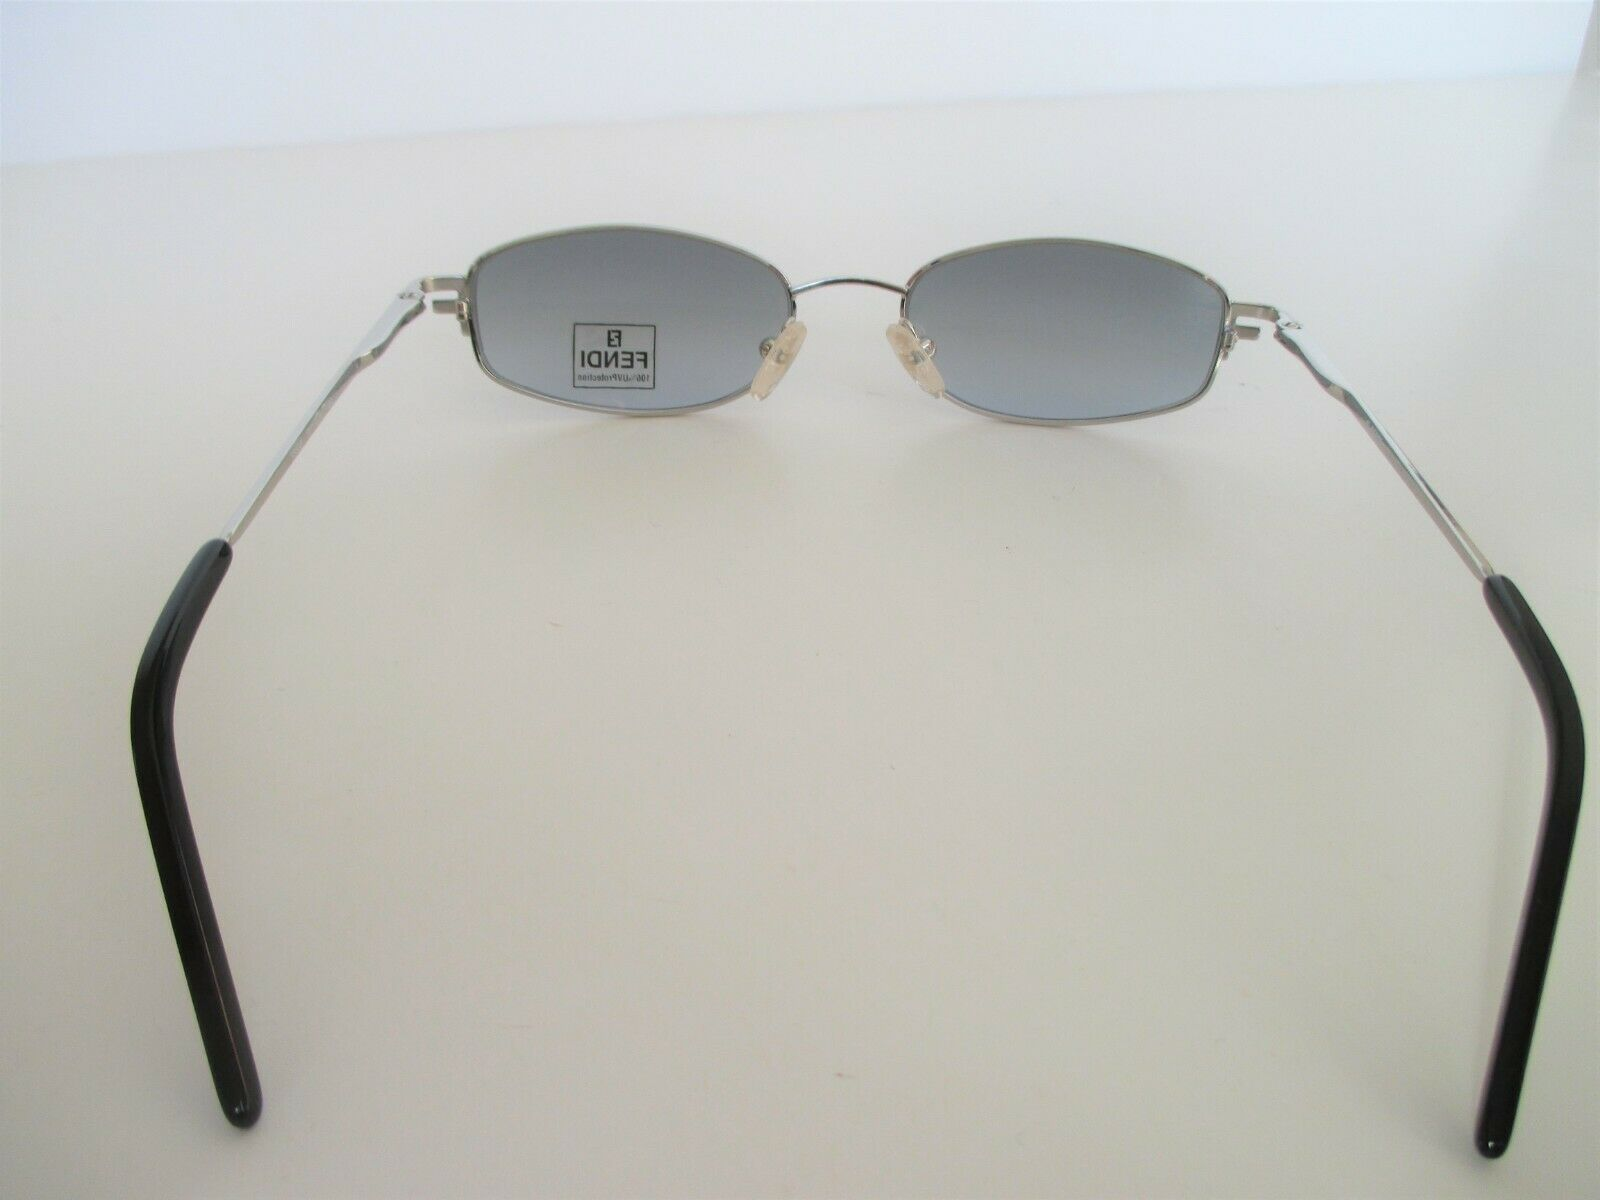 FENDI WOMEN SUNGLASSES NEW WITH LABEL AND TAG